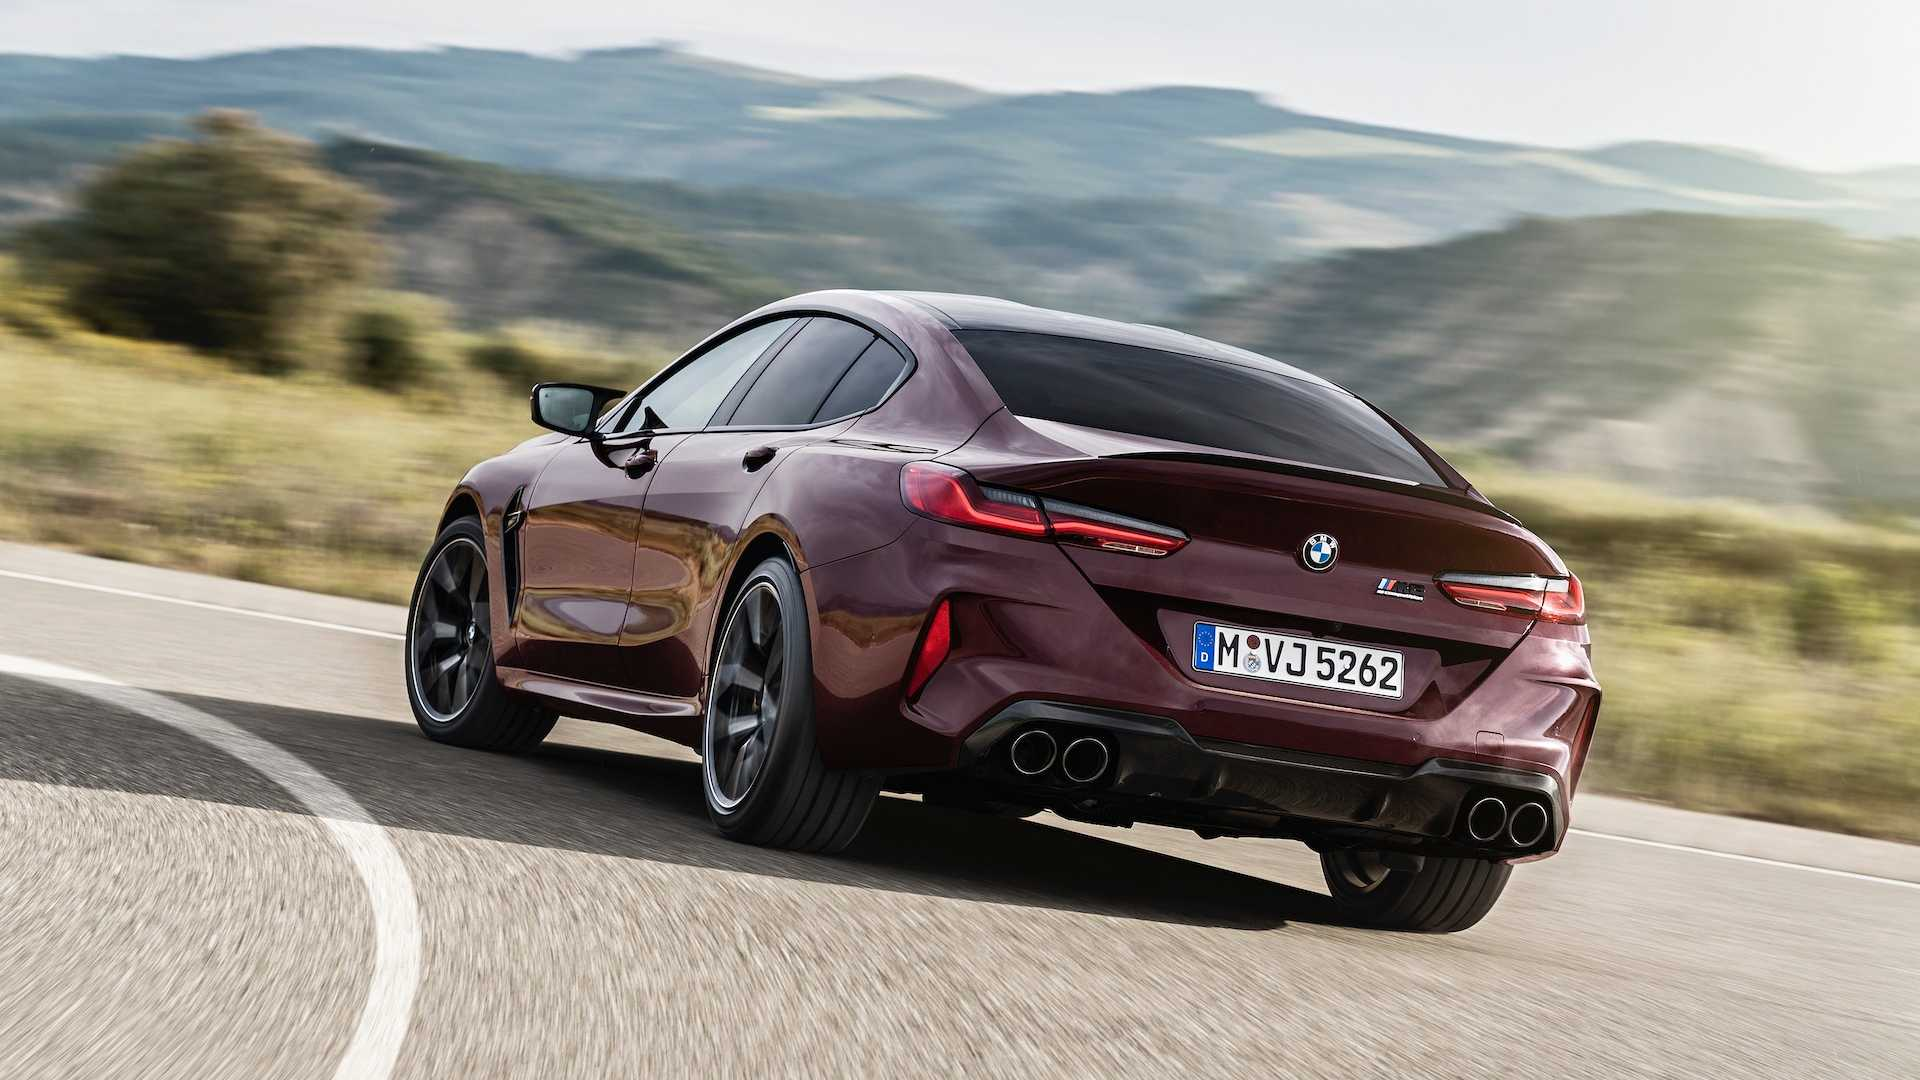 2020-bmw-m8-gran-coupe-competition-18